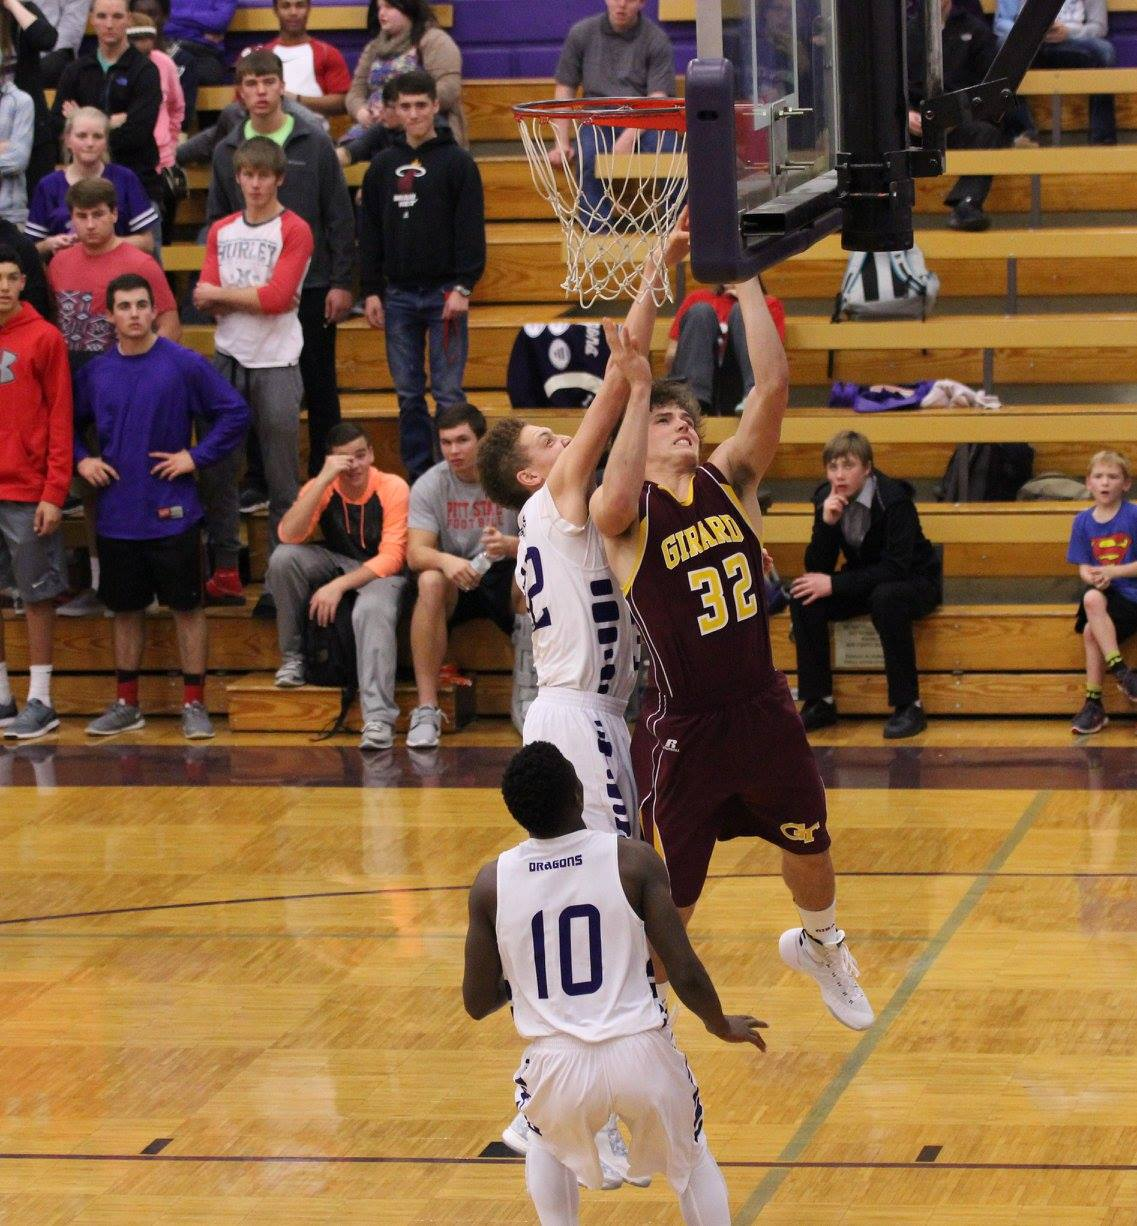 Kross Hamblin had 17 points, second to only Drew Davied in the Trojans come from behind win over Pittsburg on Tuesday. PHOTO BY JOYCE KOVACIC